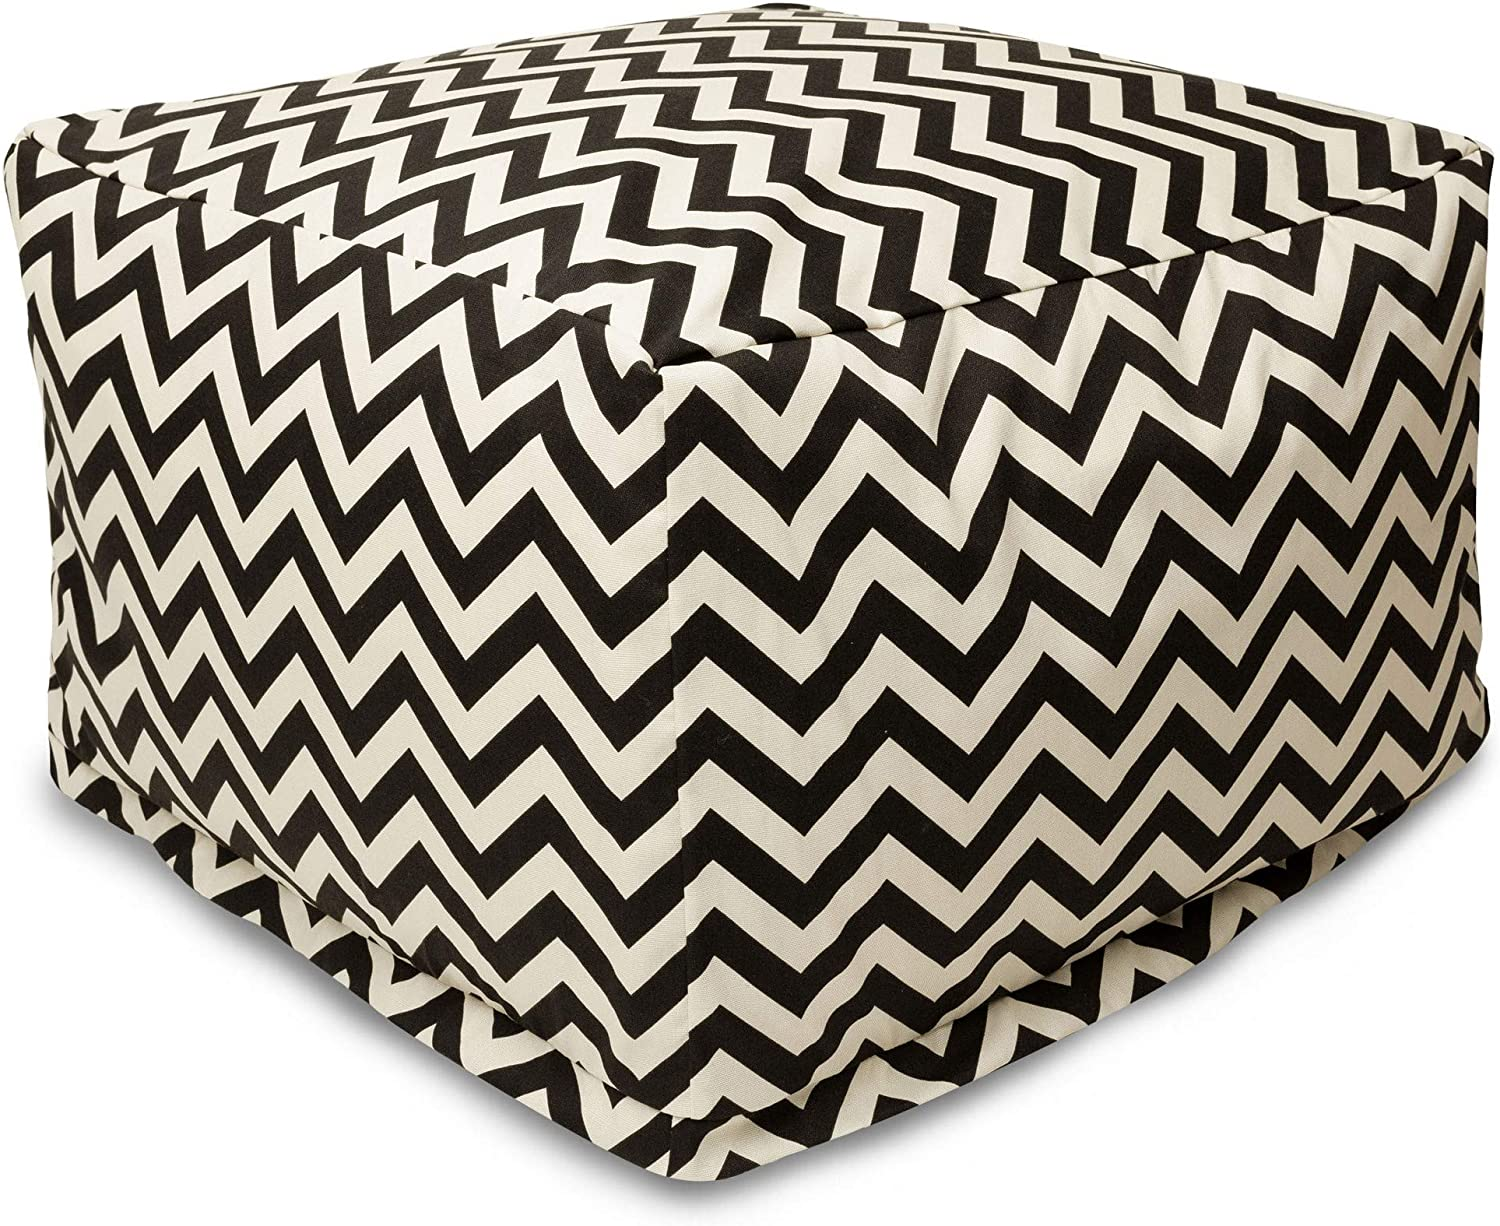 Majestic Max 42% OFF Home Selling and selling Goods Black Zig Zag Large Ottoman